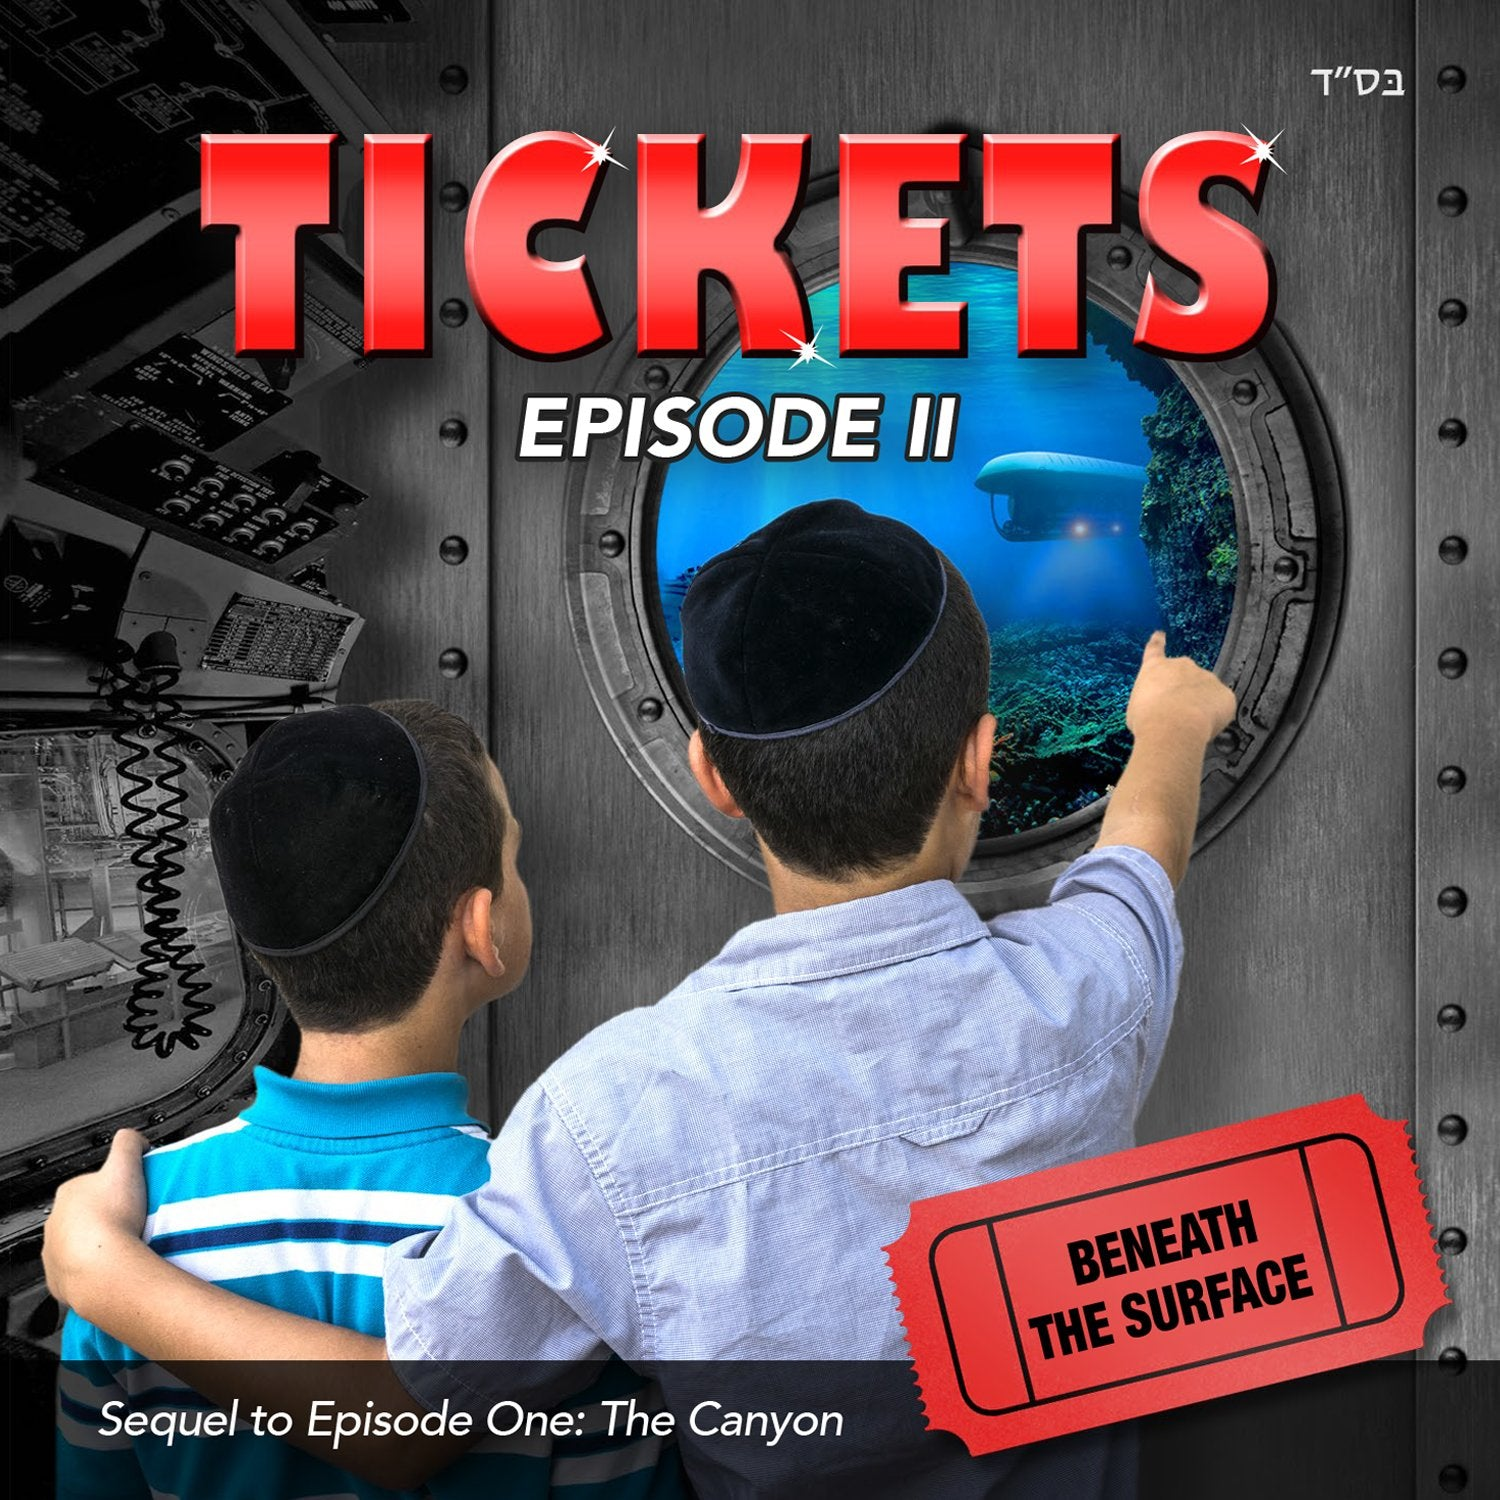 Tickets Episode II - Beneath The Surface